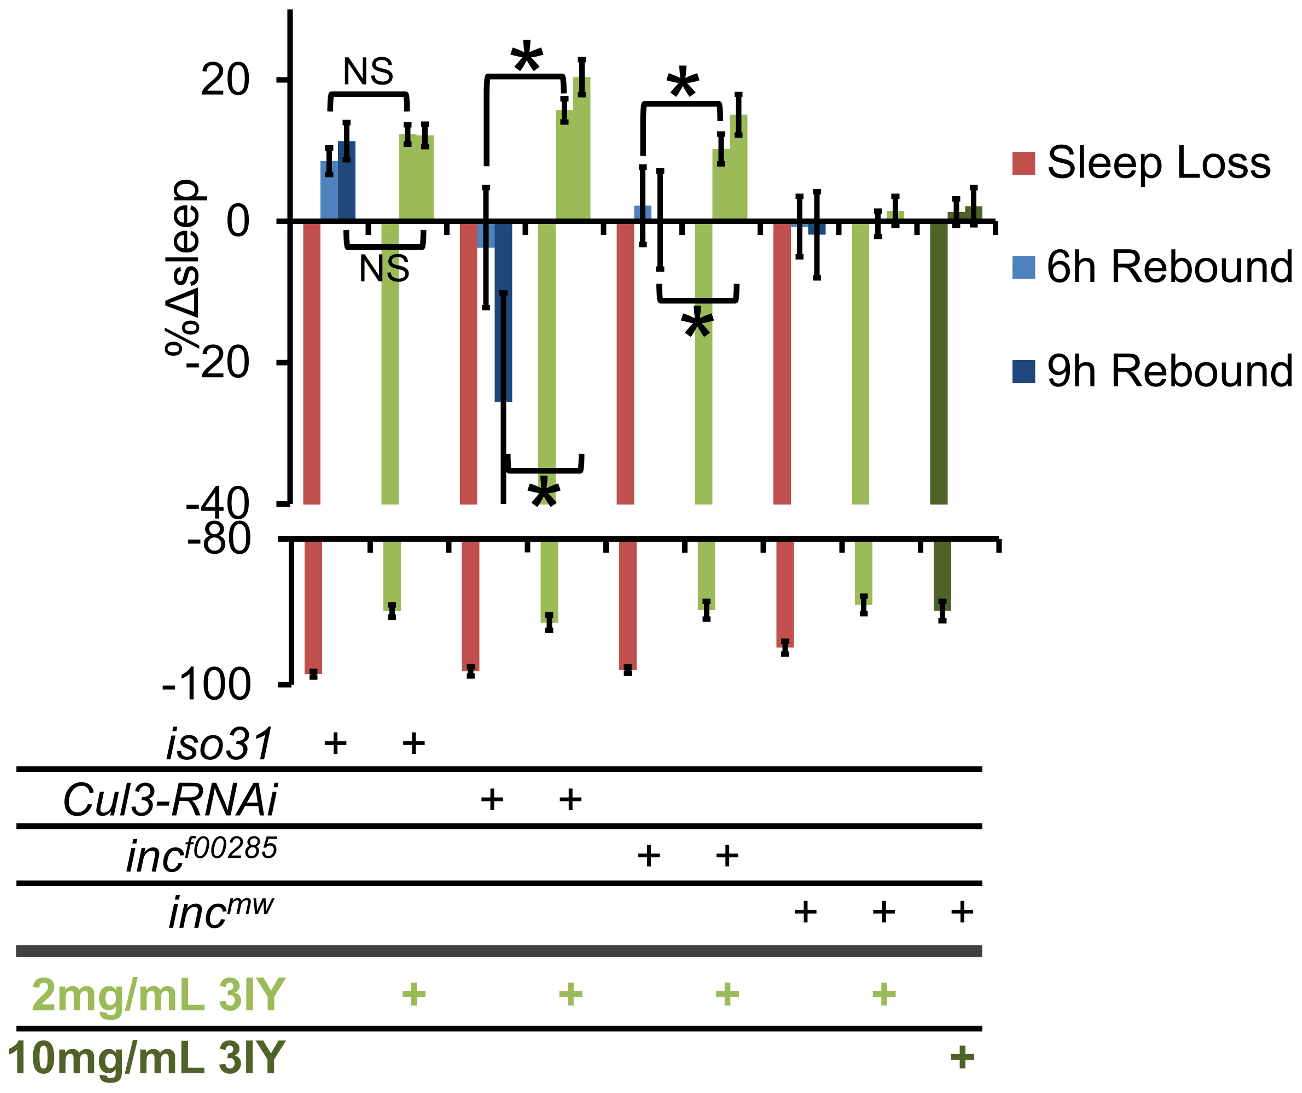 3IY rescues sleep homeostasis defects in <i>Cul3-RNAi</i> and <i>inc<sup>f00285</sup></i> but not <i>inc<sup>mw</sup></i>.